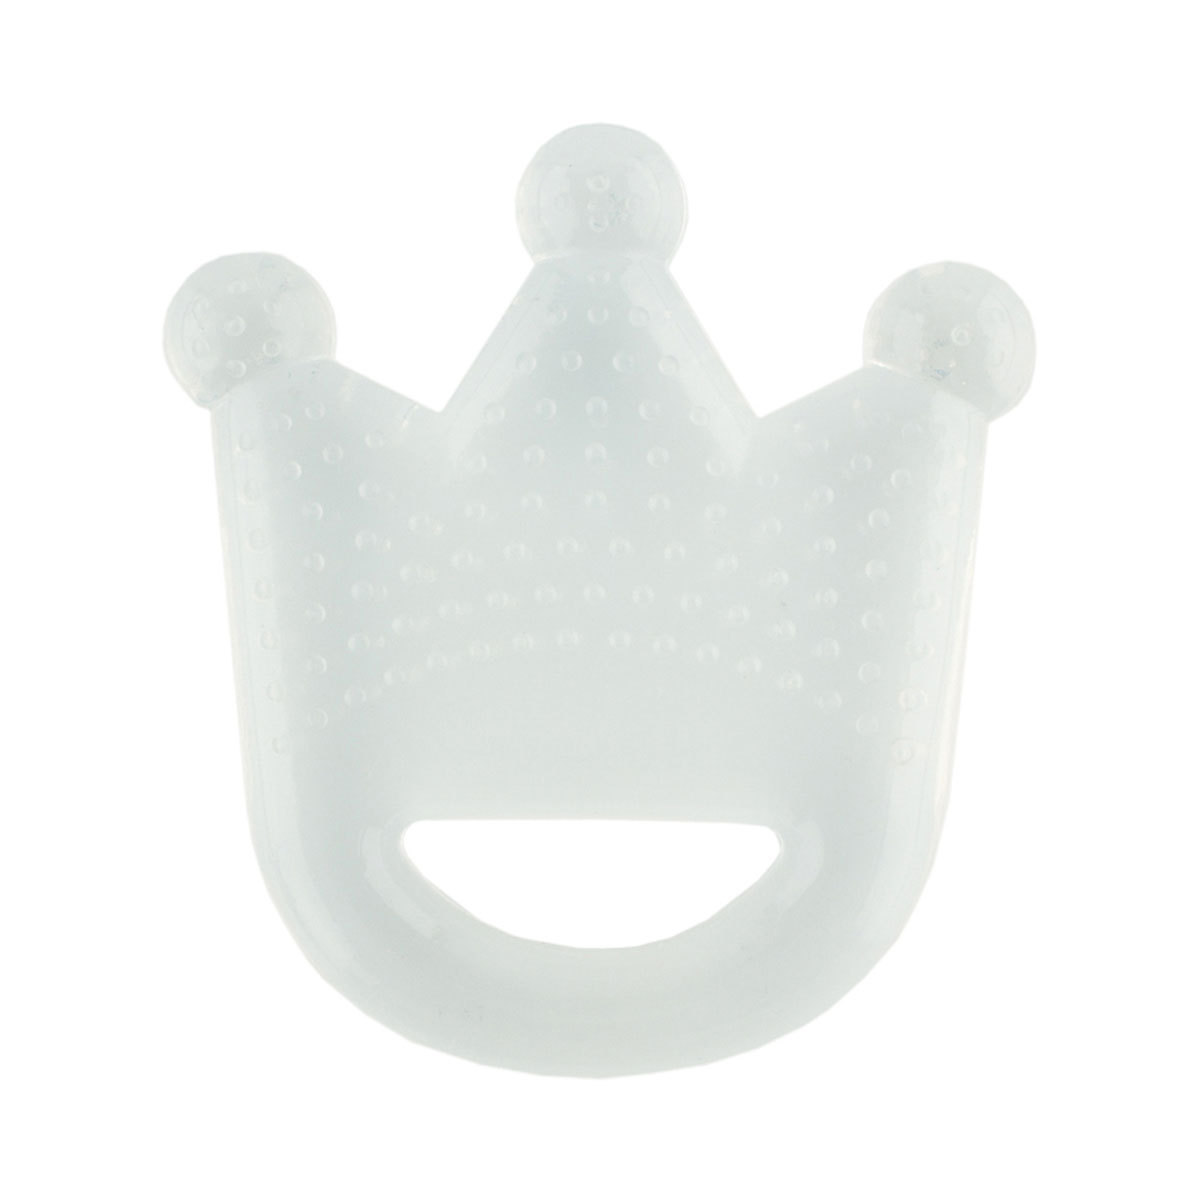 Dentition Couronne de Dentition Couronne de Dentition